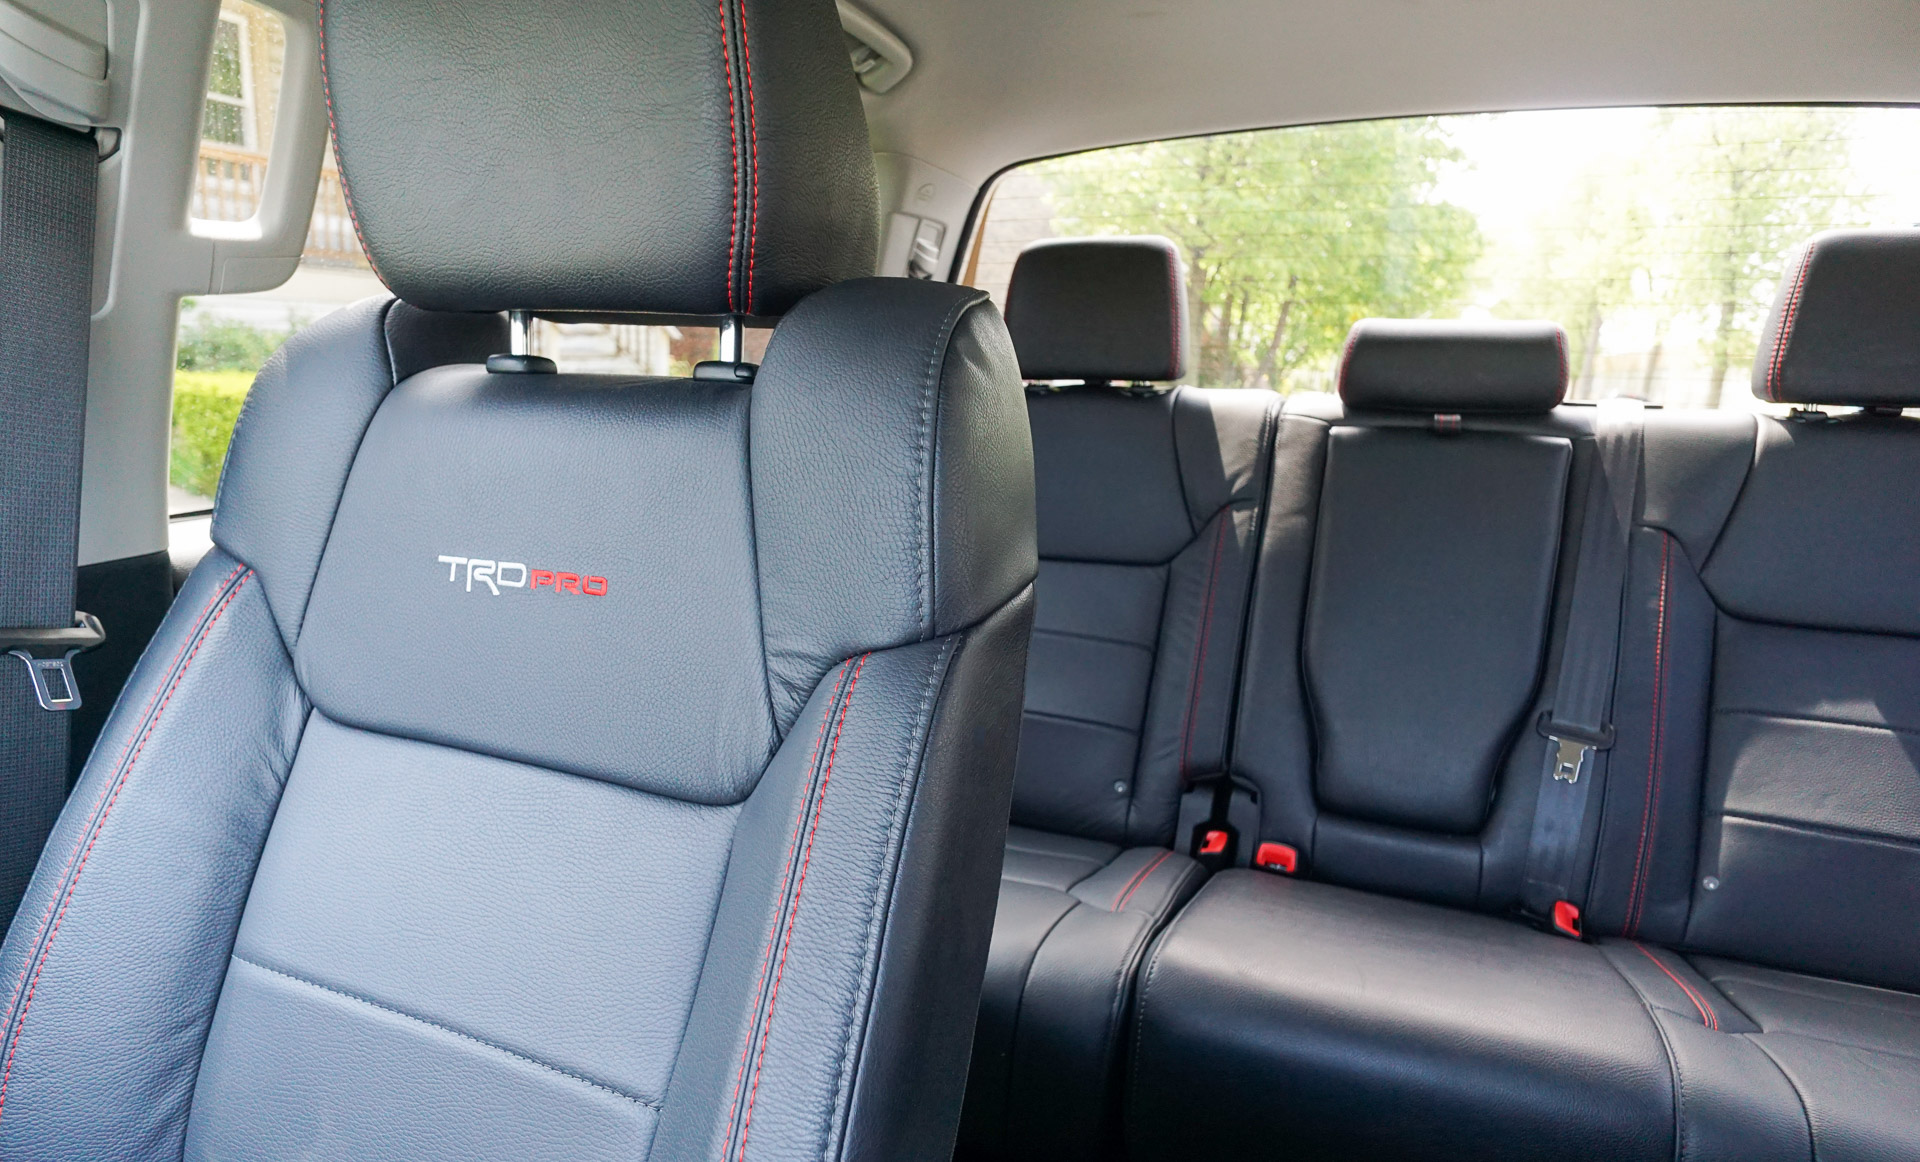 tundra trd pro leather seats. Black Bedroom Furniture Sets. Home Design Ideas